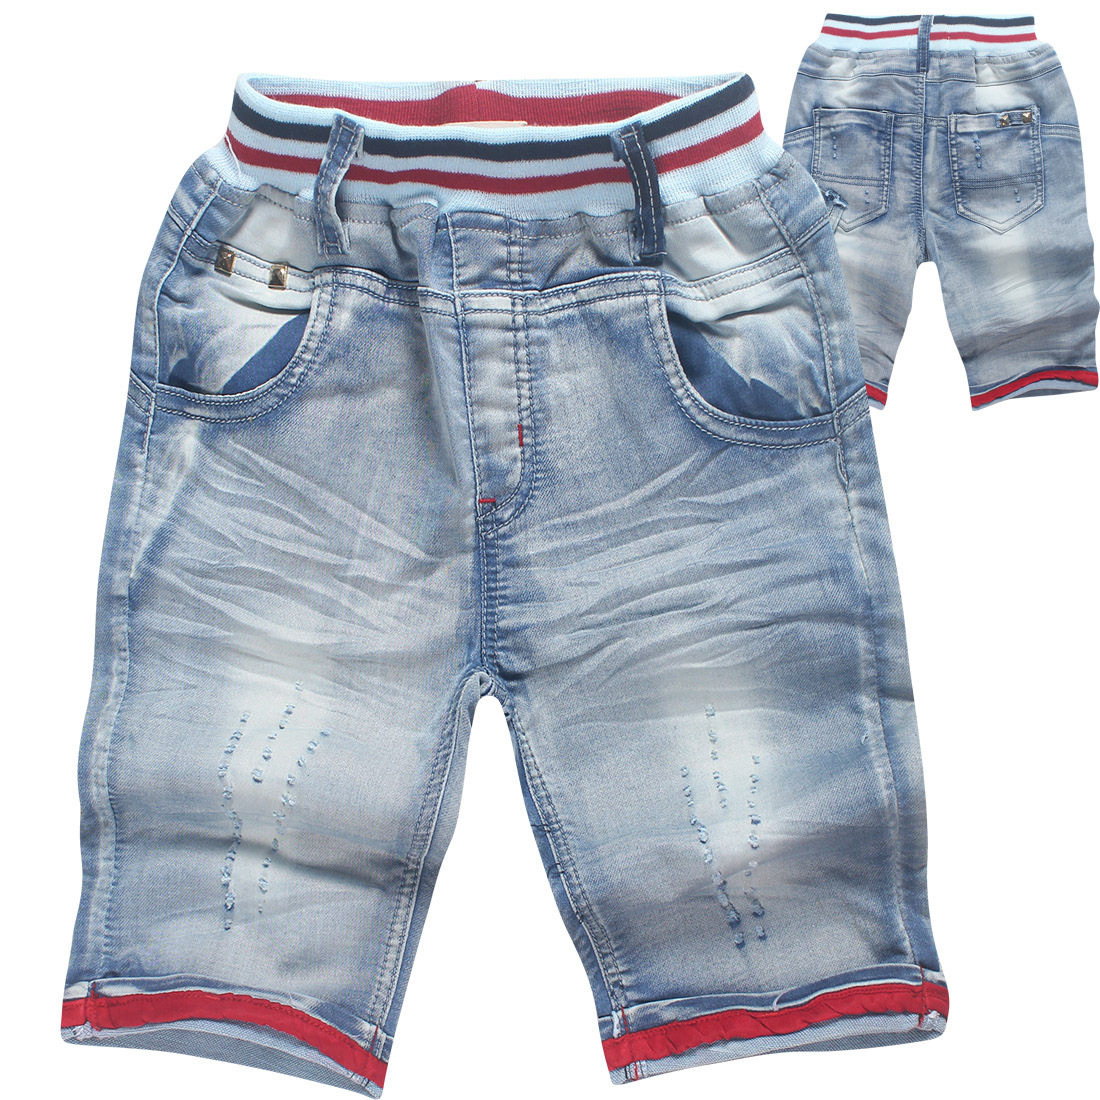 2018 Spring Children's Pants boys Girls ripped jeans Broken Hole Wash jeans for Children clothes fashion girls teens denim pants balplein brand men jeans vintage retro designer motor ripped jeans homme high street fashion denim destroyed biker jeans men